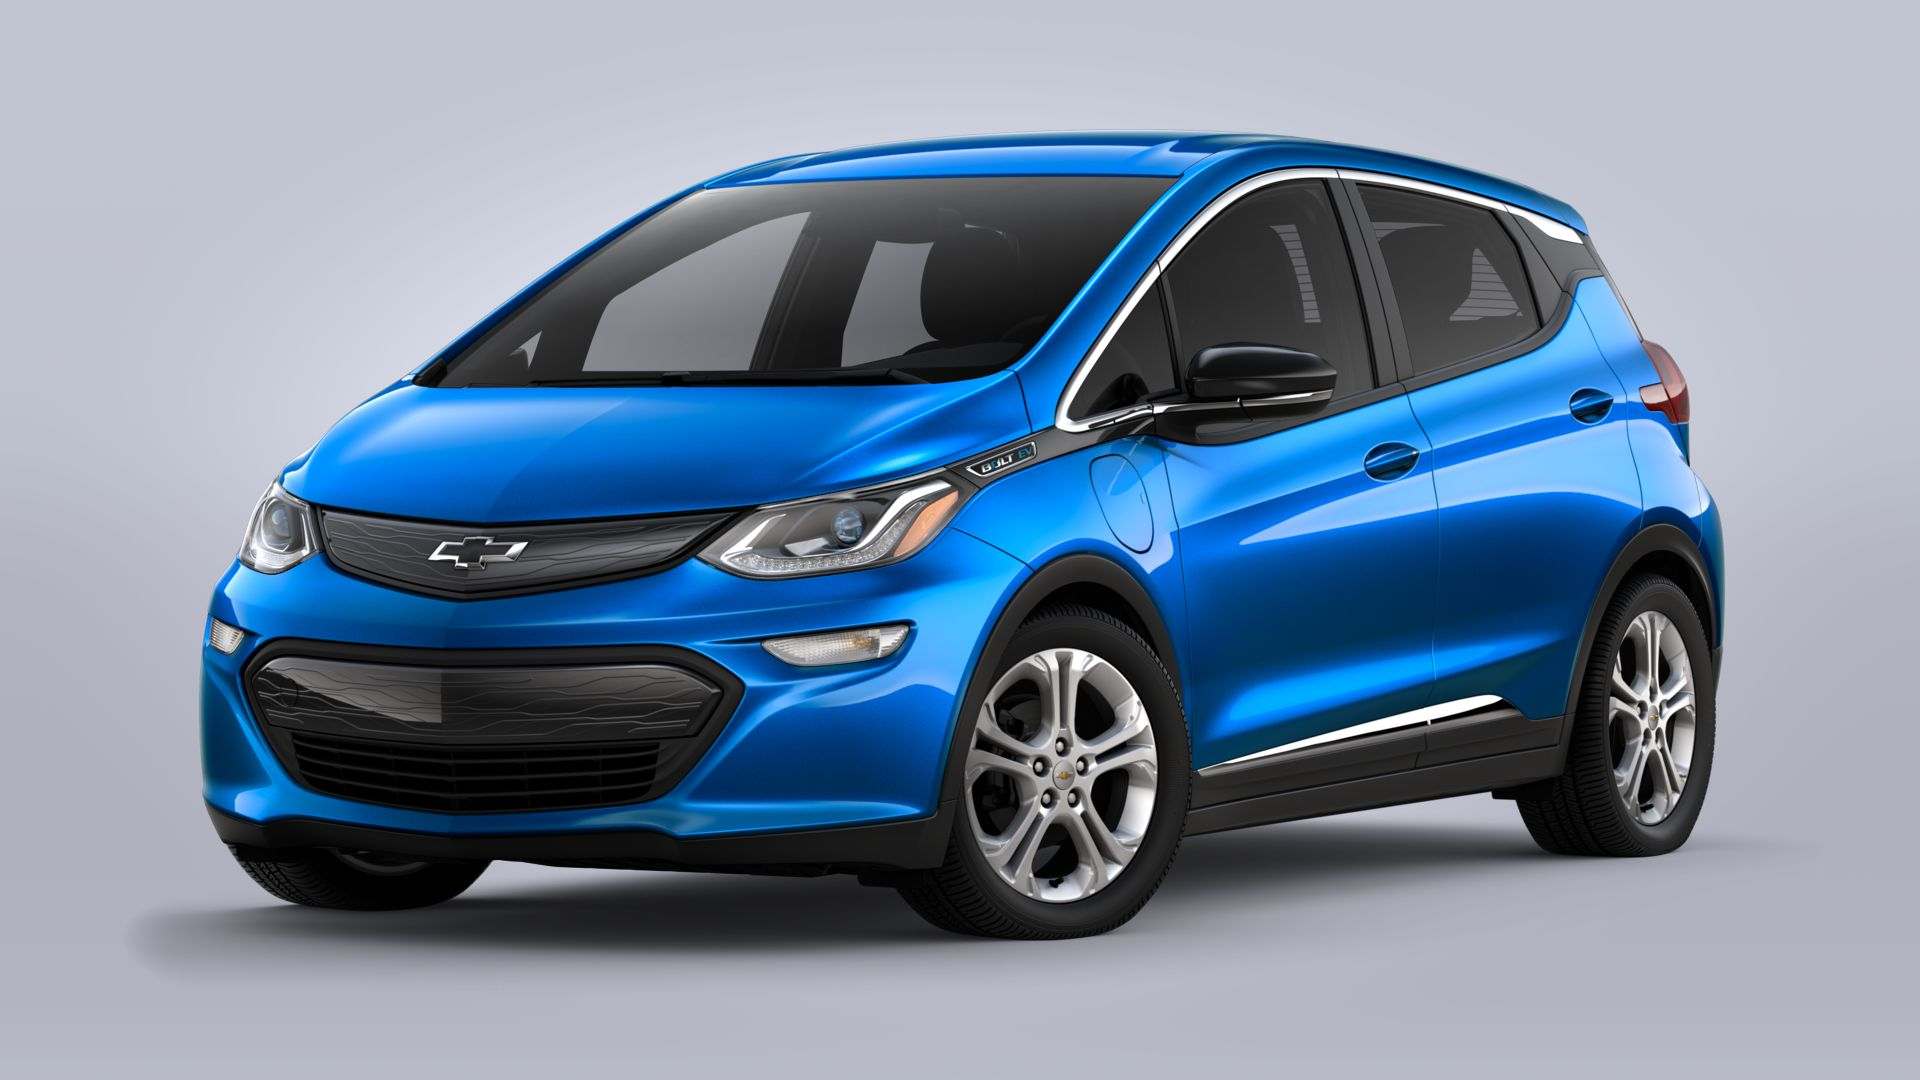 2020 Chevrolet Bolt EV LT